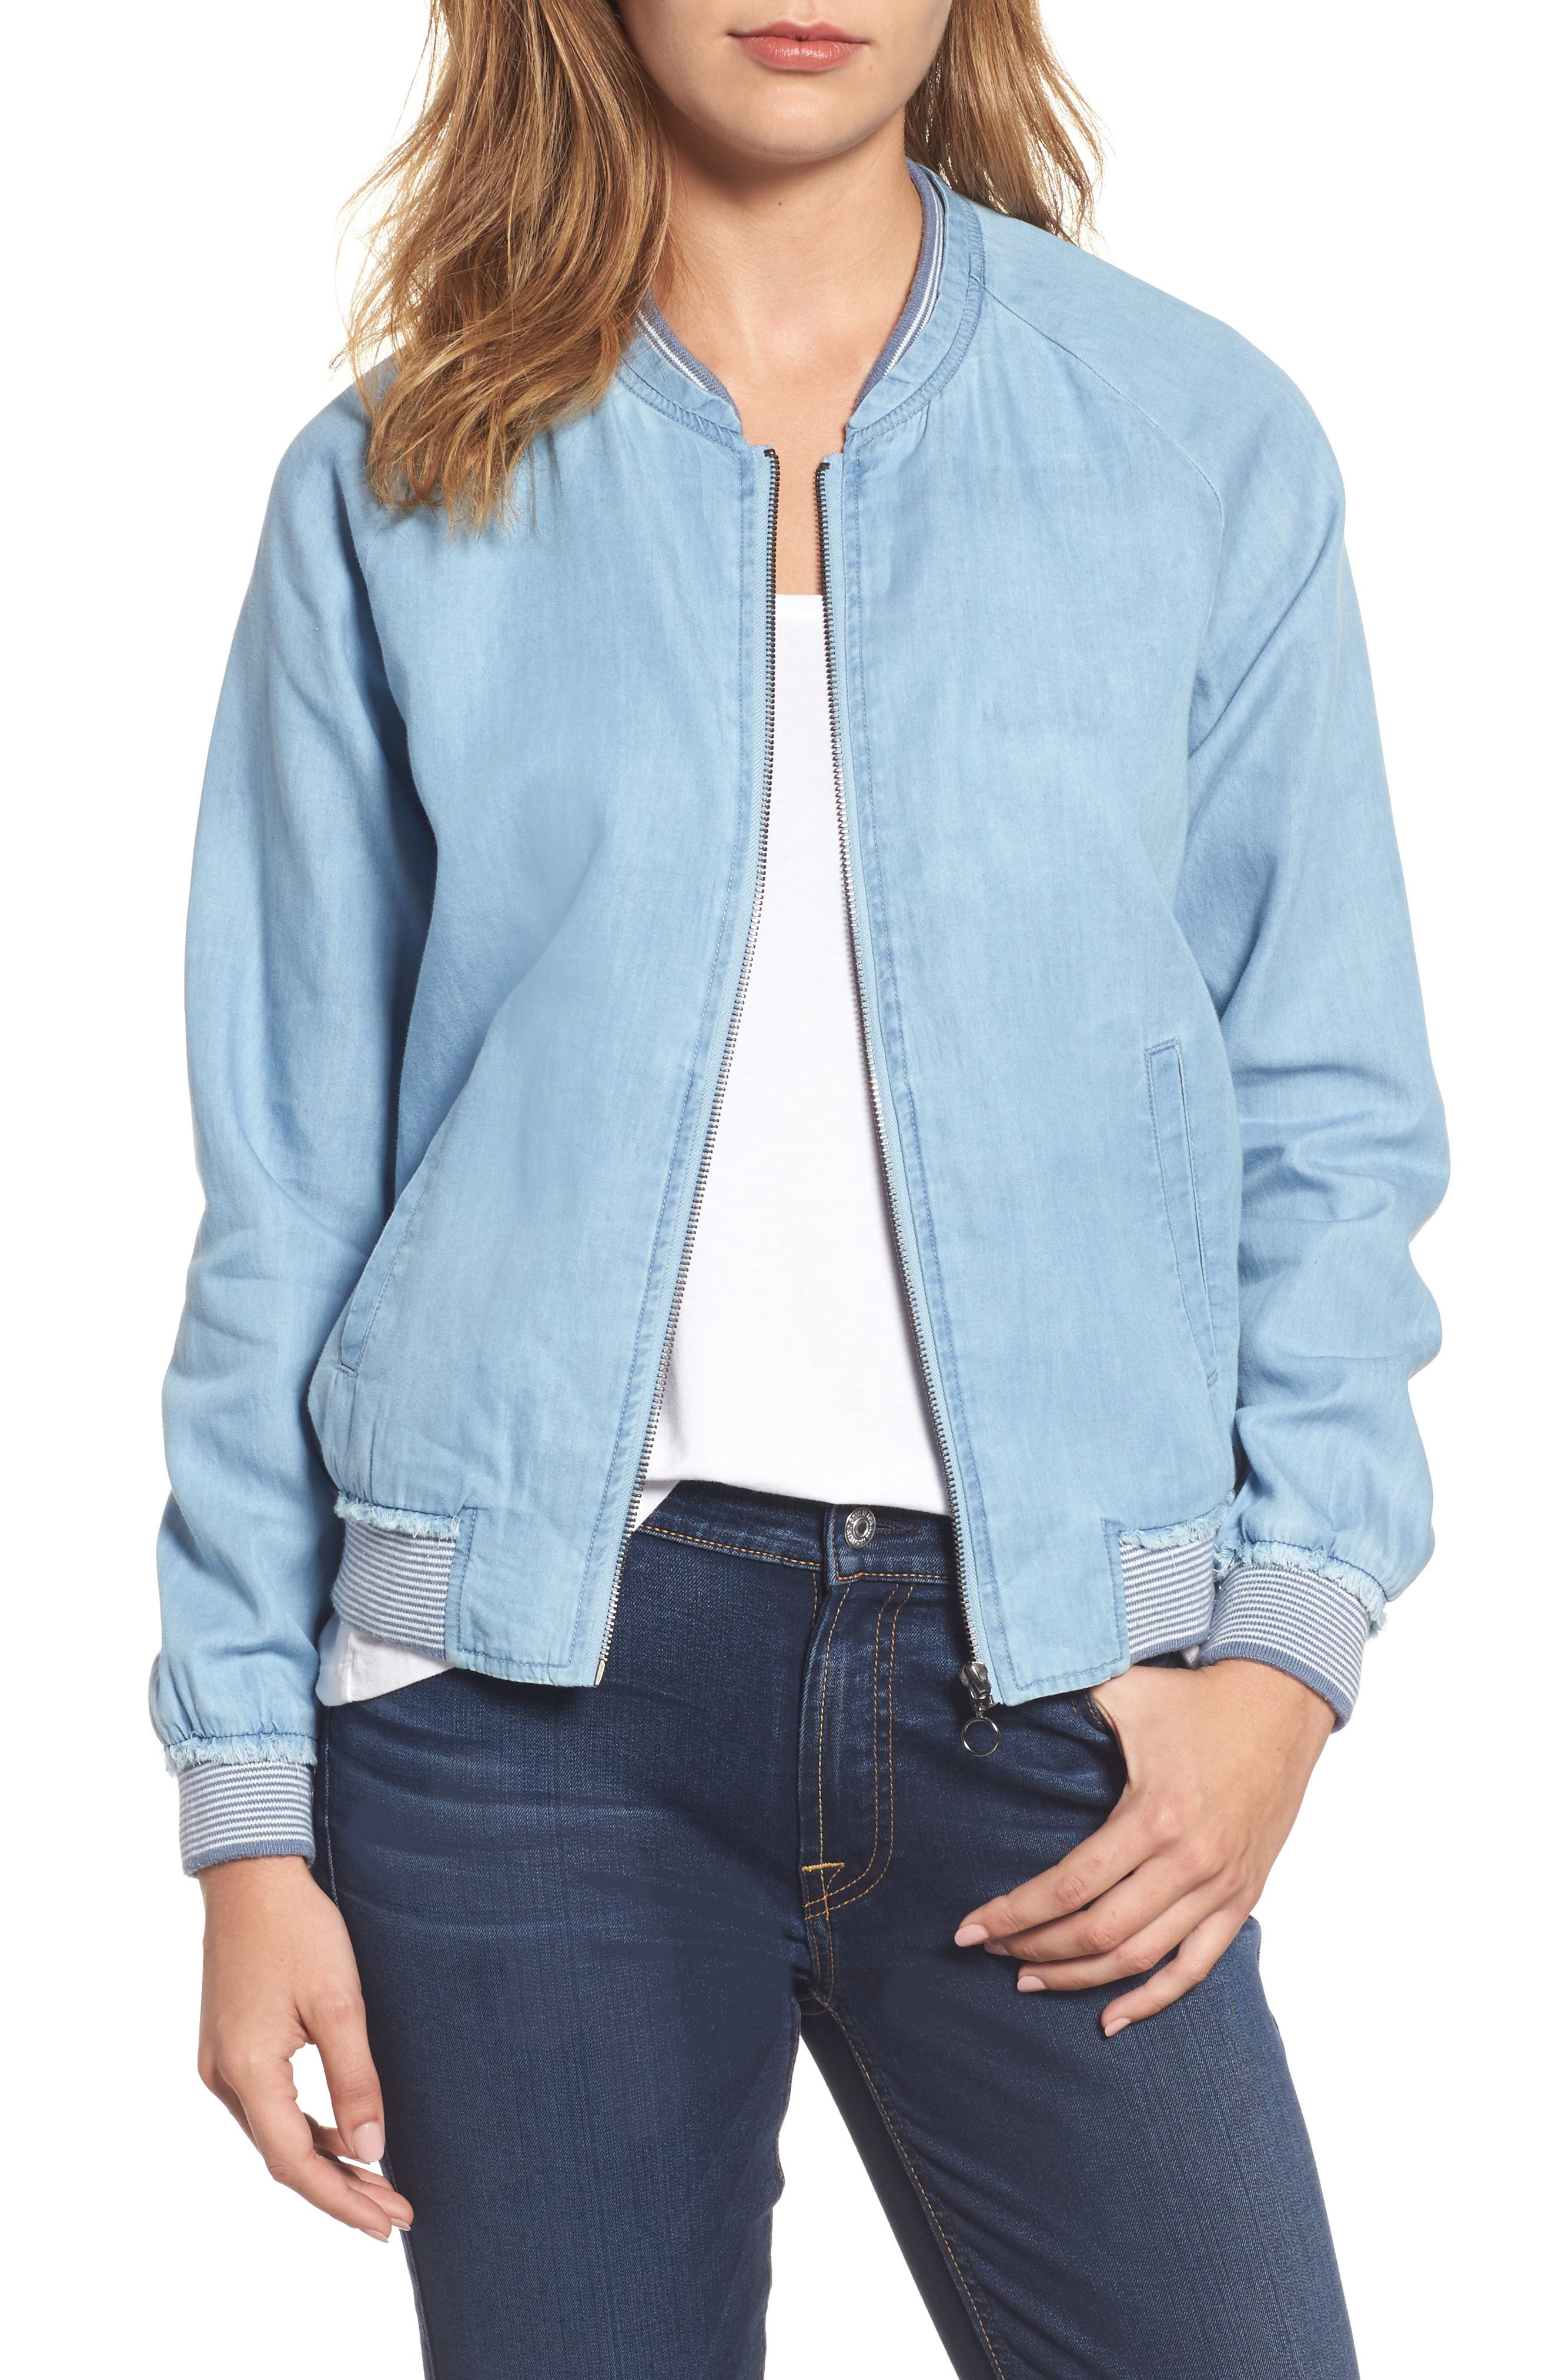 Alternate Image 1 Selected - Wit & Wisdom Chambray Bomber Jacket (Nordstrom Exclusive)